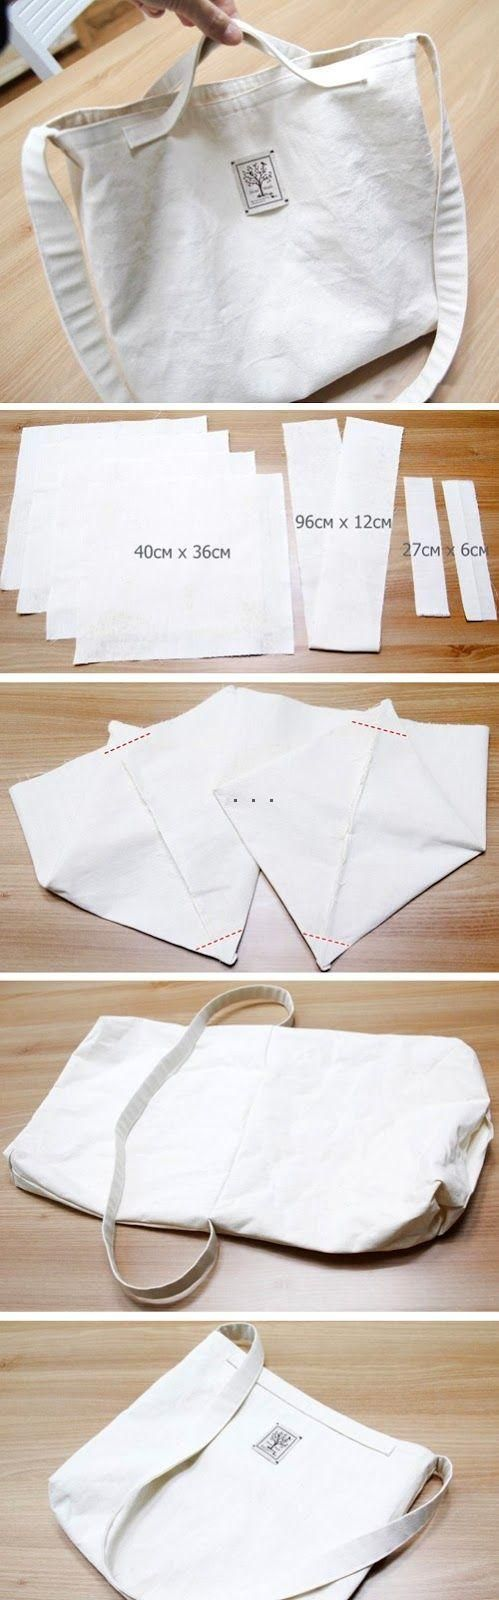 How-to-Sew-Double-Sided-Eco-Bag